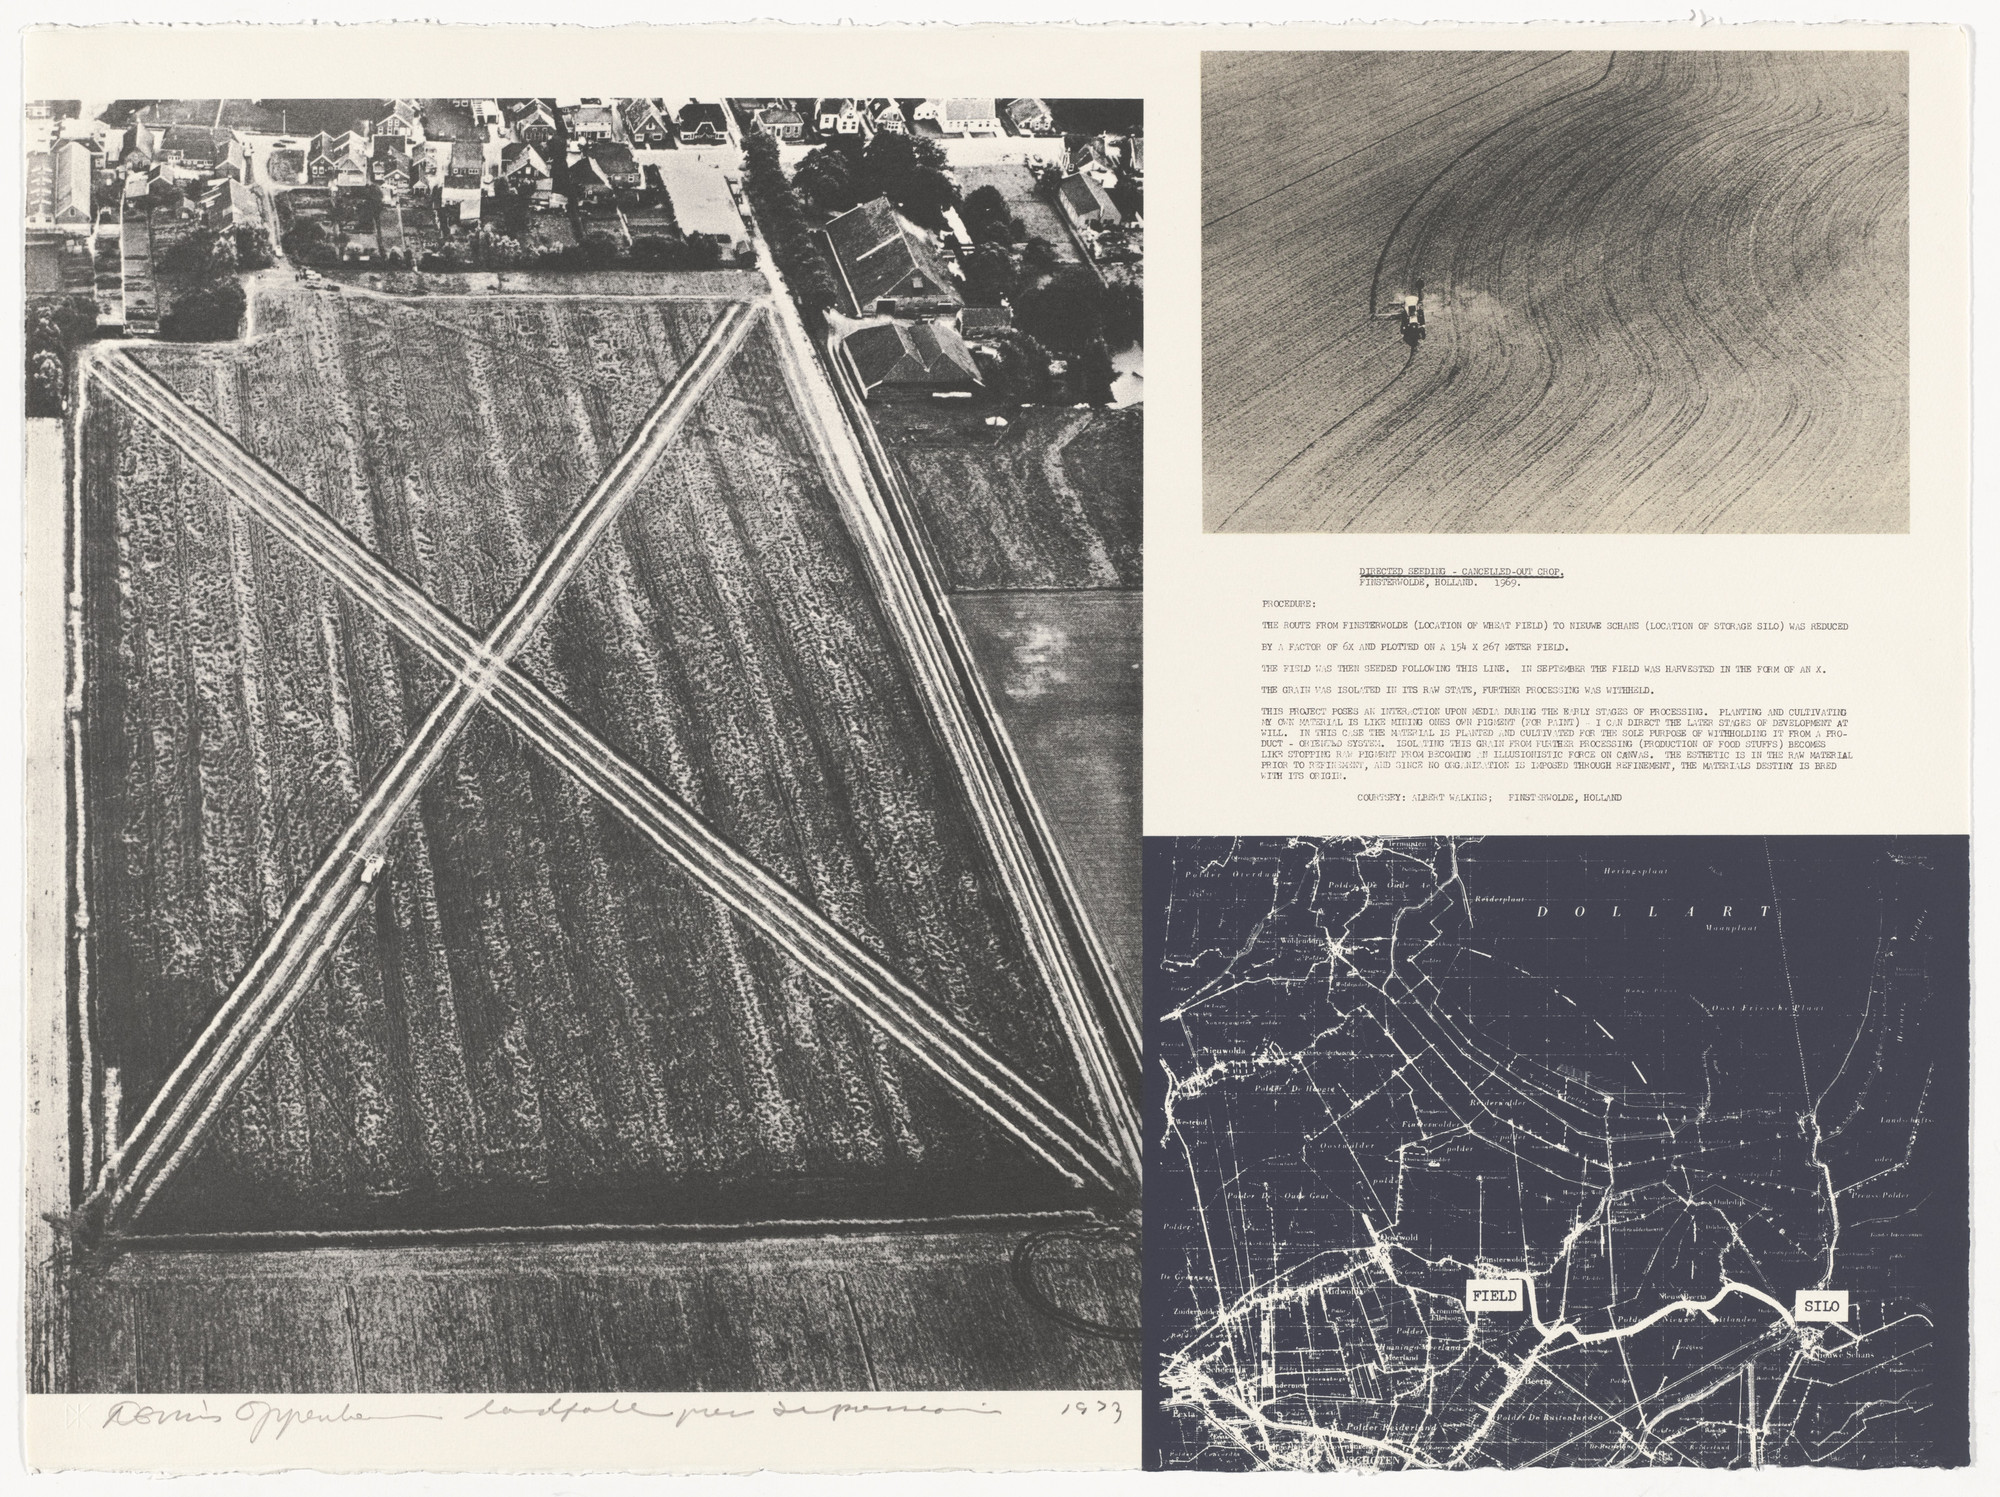 Dennis Oppenheim. Cancelled Crop - Direct Seeding. 1969 from Projects by Dennis Oppenheim. 1973